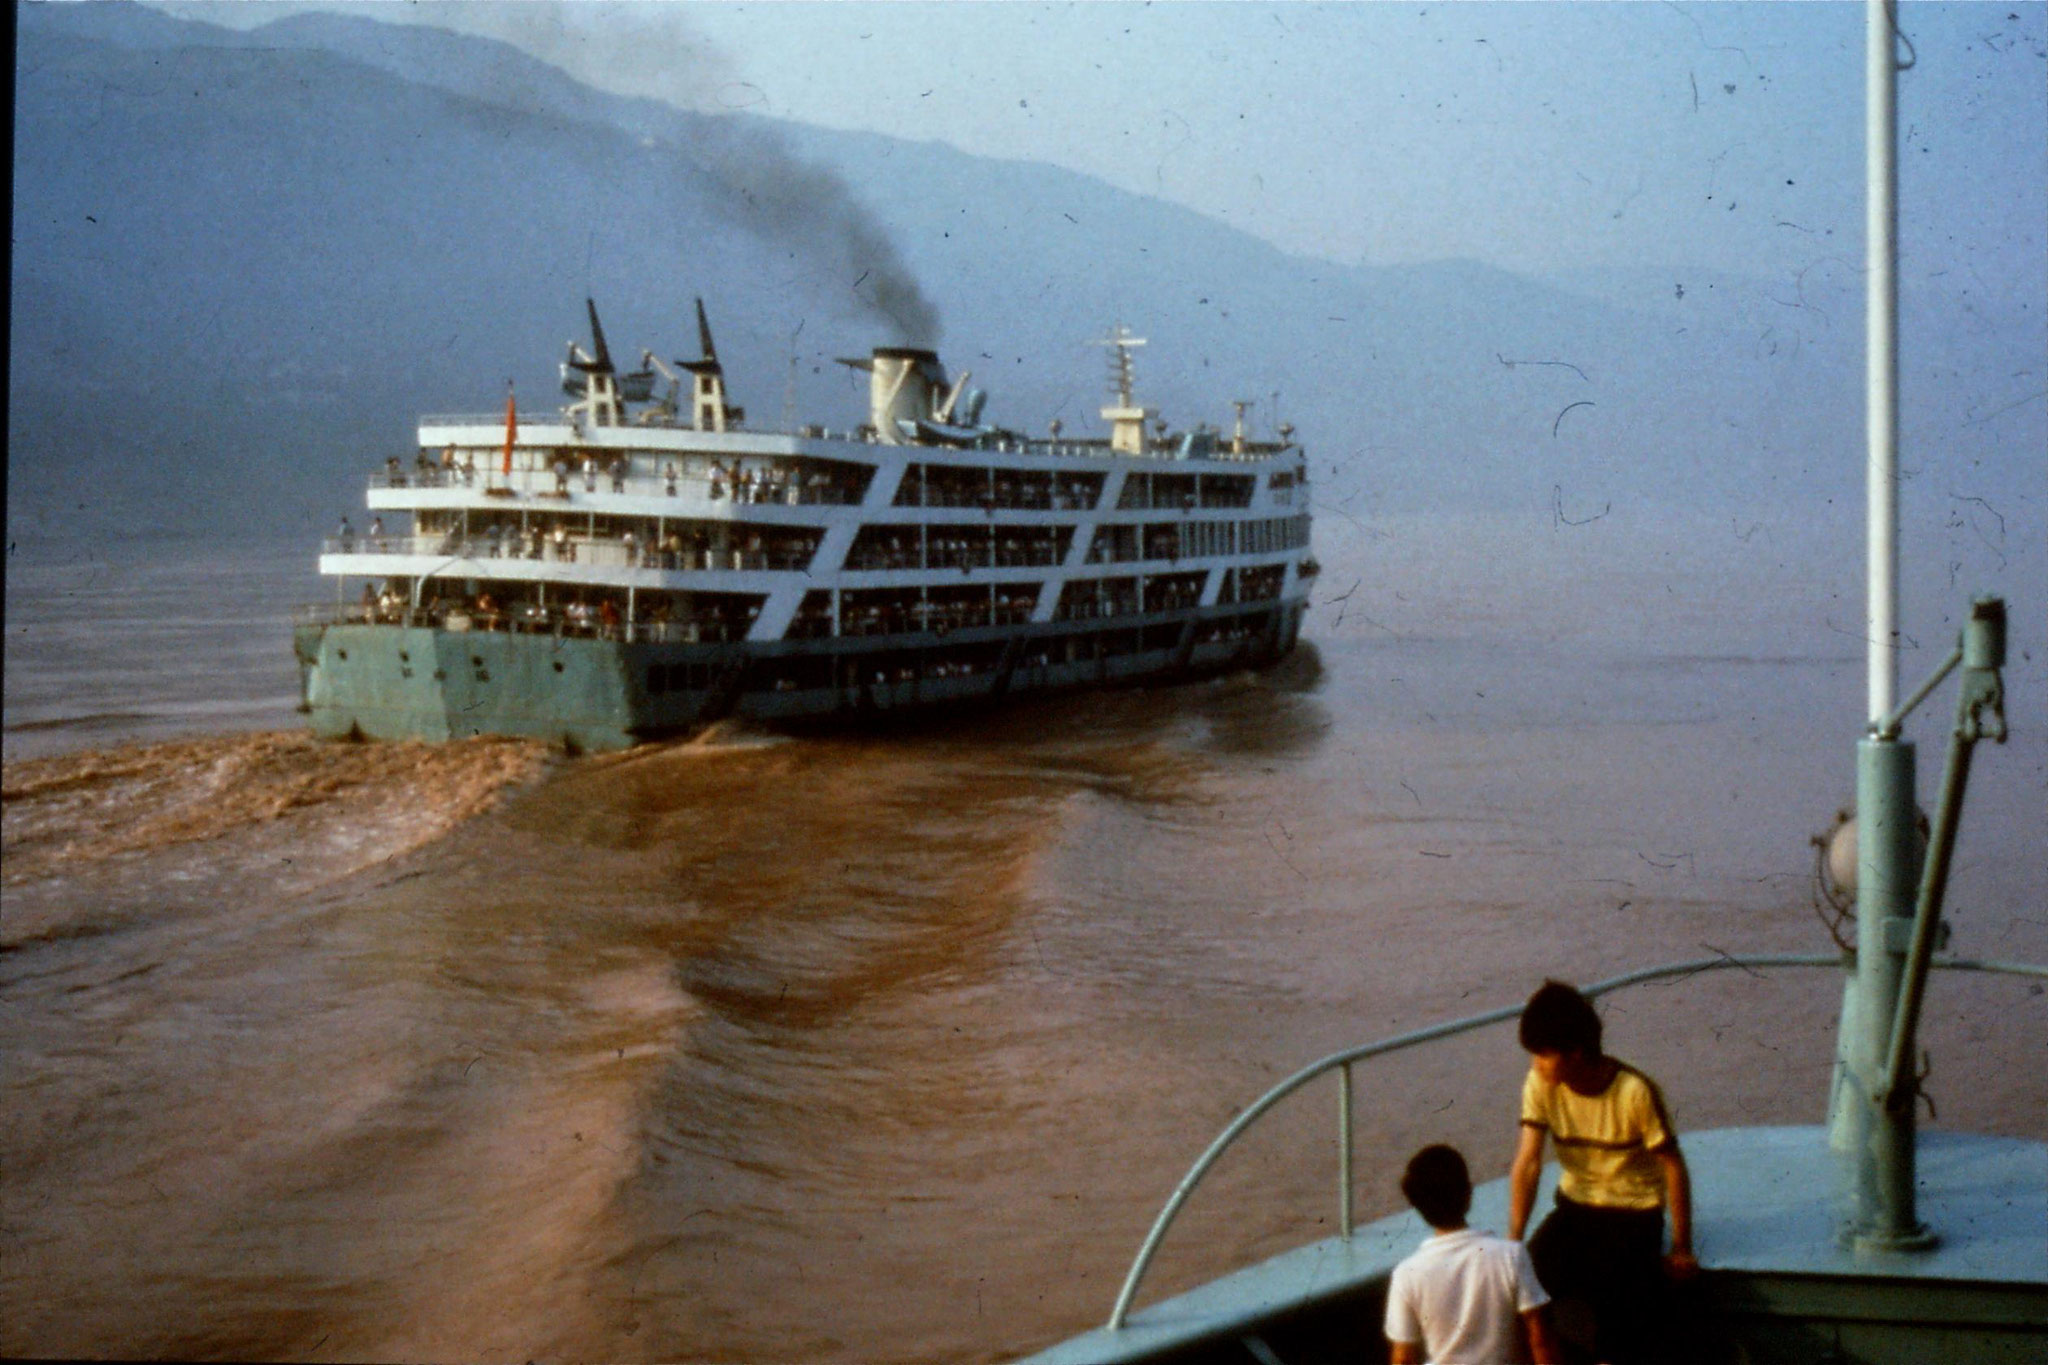 11/8/1989:16:0830 ferry like ours overtaking